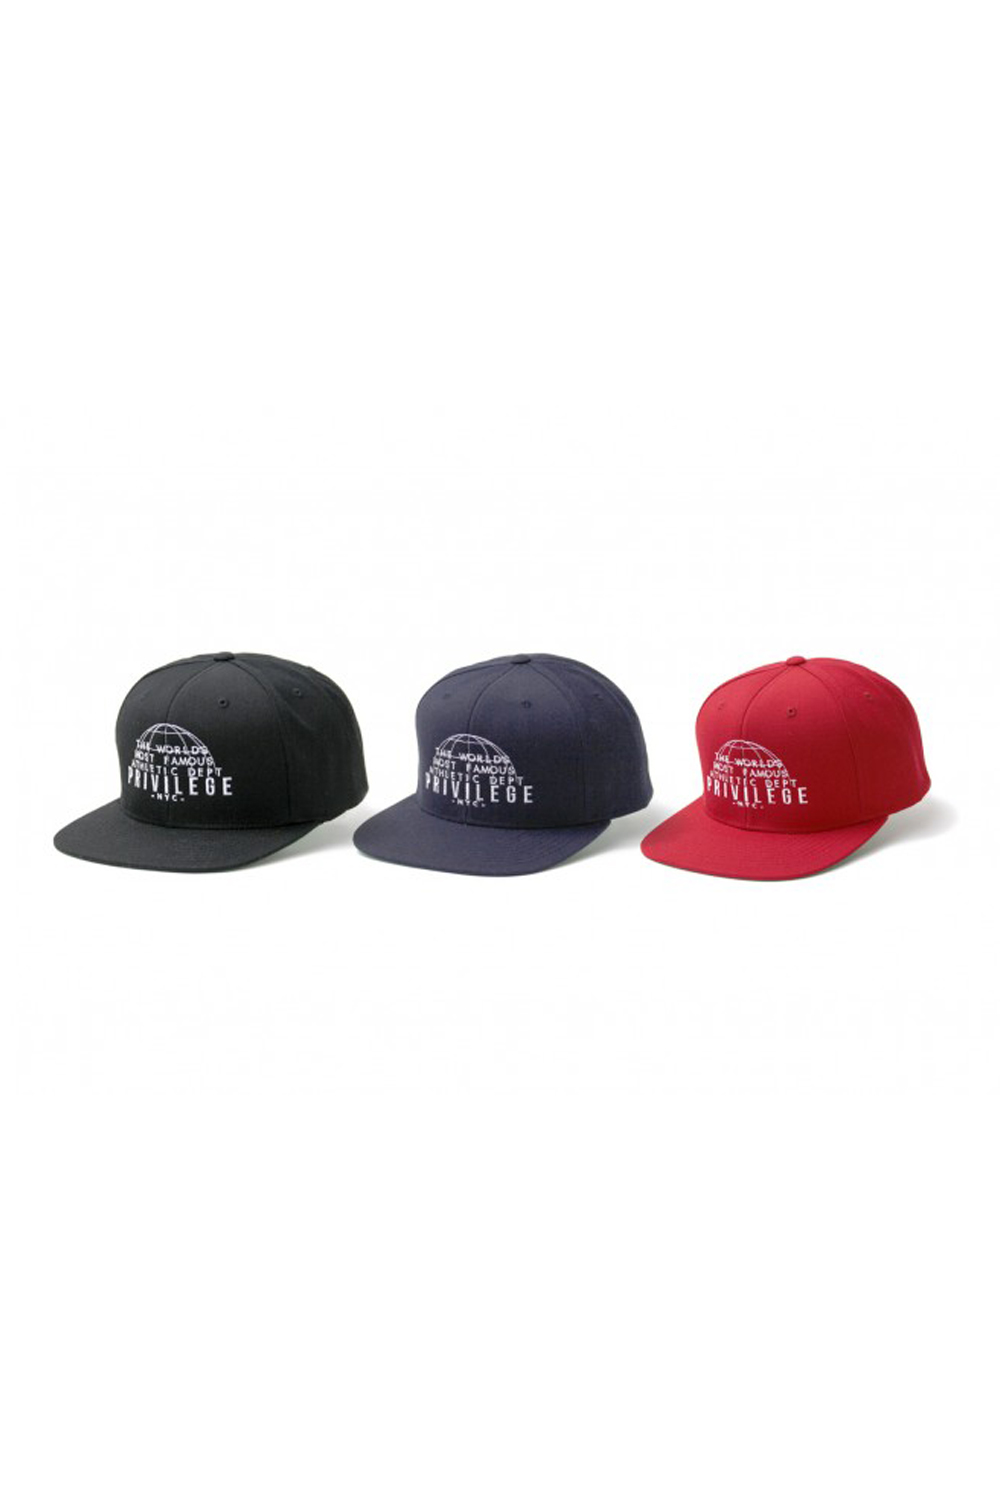 画像1: 【PRIVILEGE】WORLD FAMOUS SNAPBACK CAP